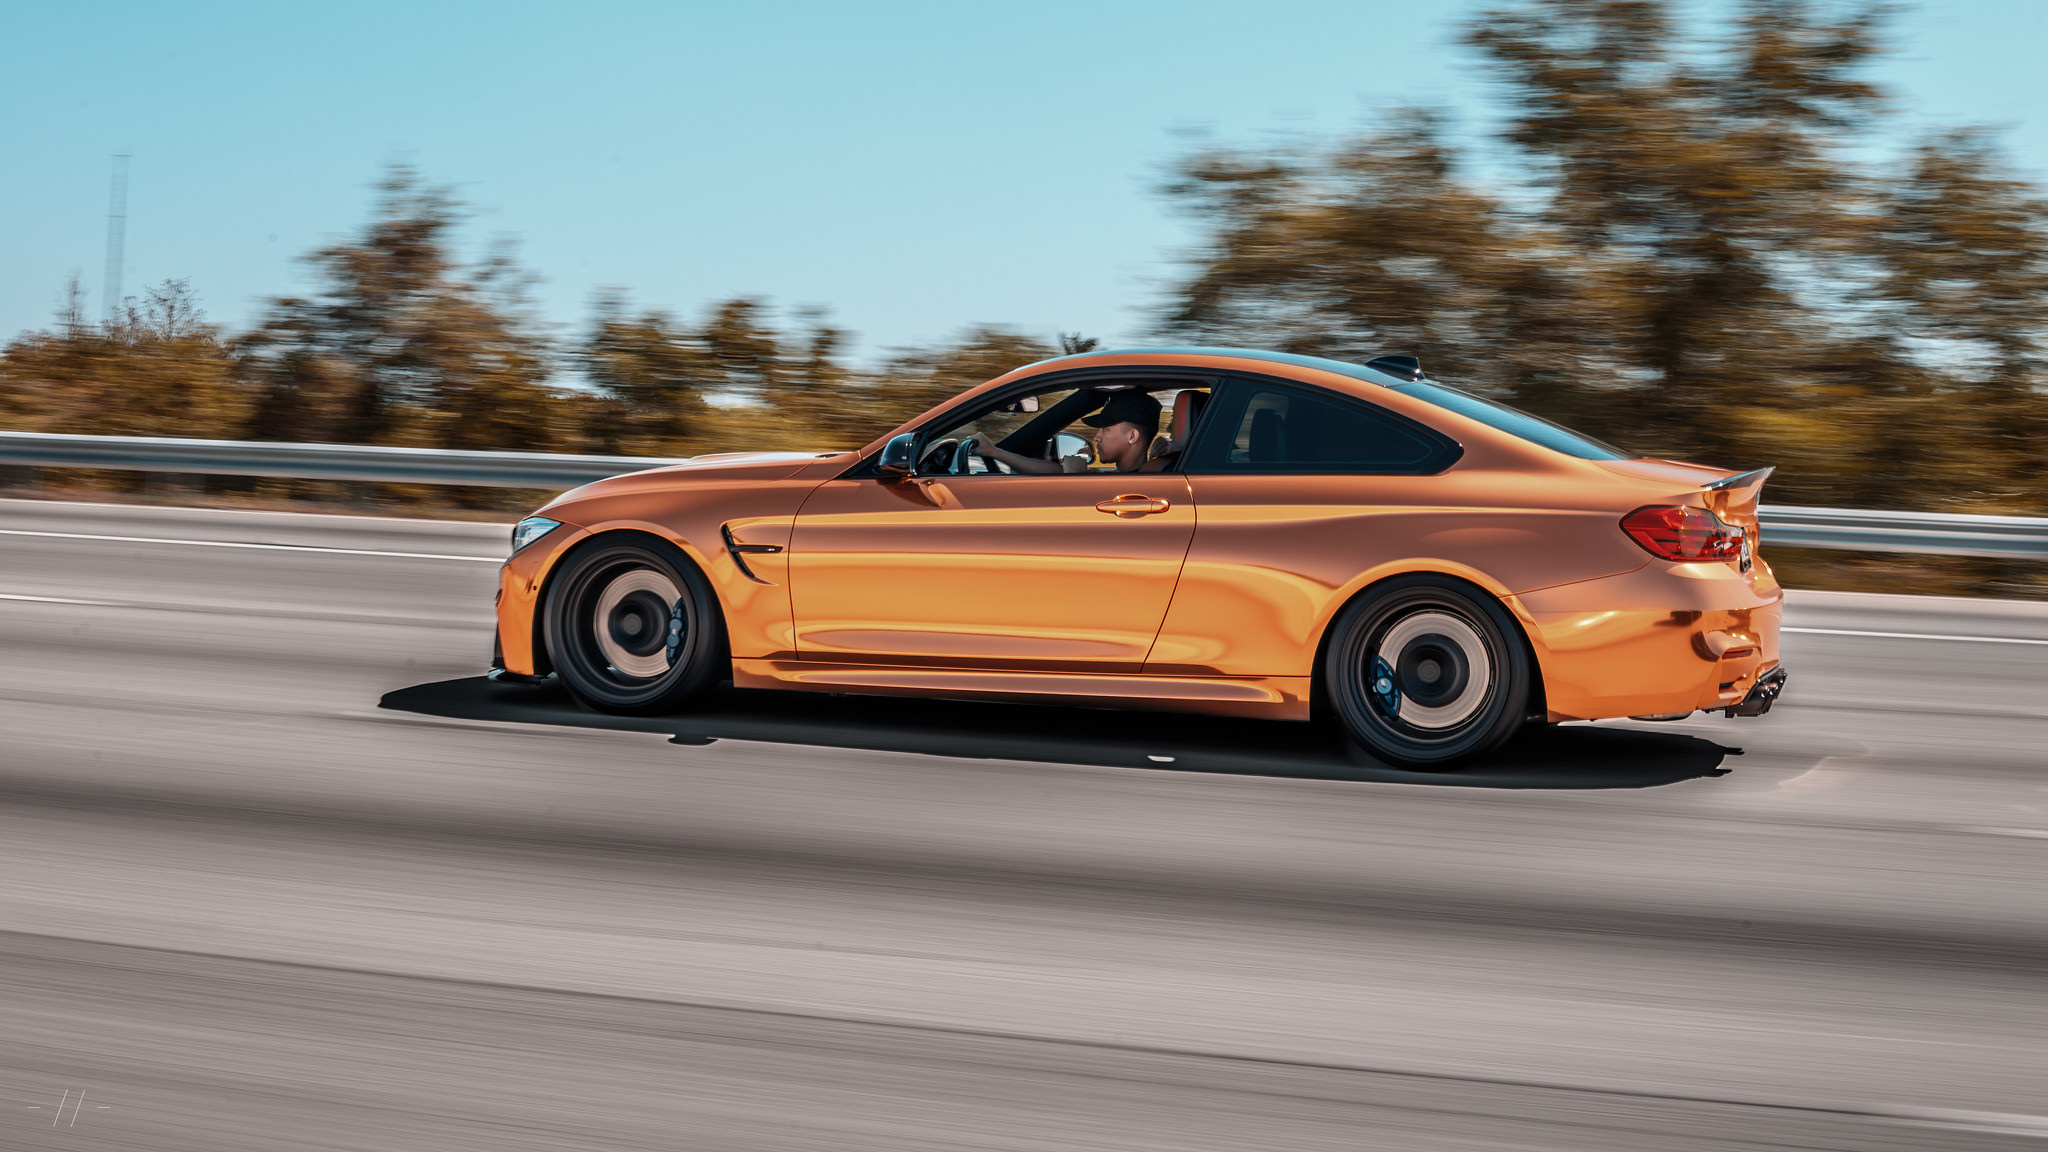 Rose Gold Bmw M4 On Velos S10 1 Pc Forged Wheels Velos Designwerks